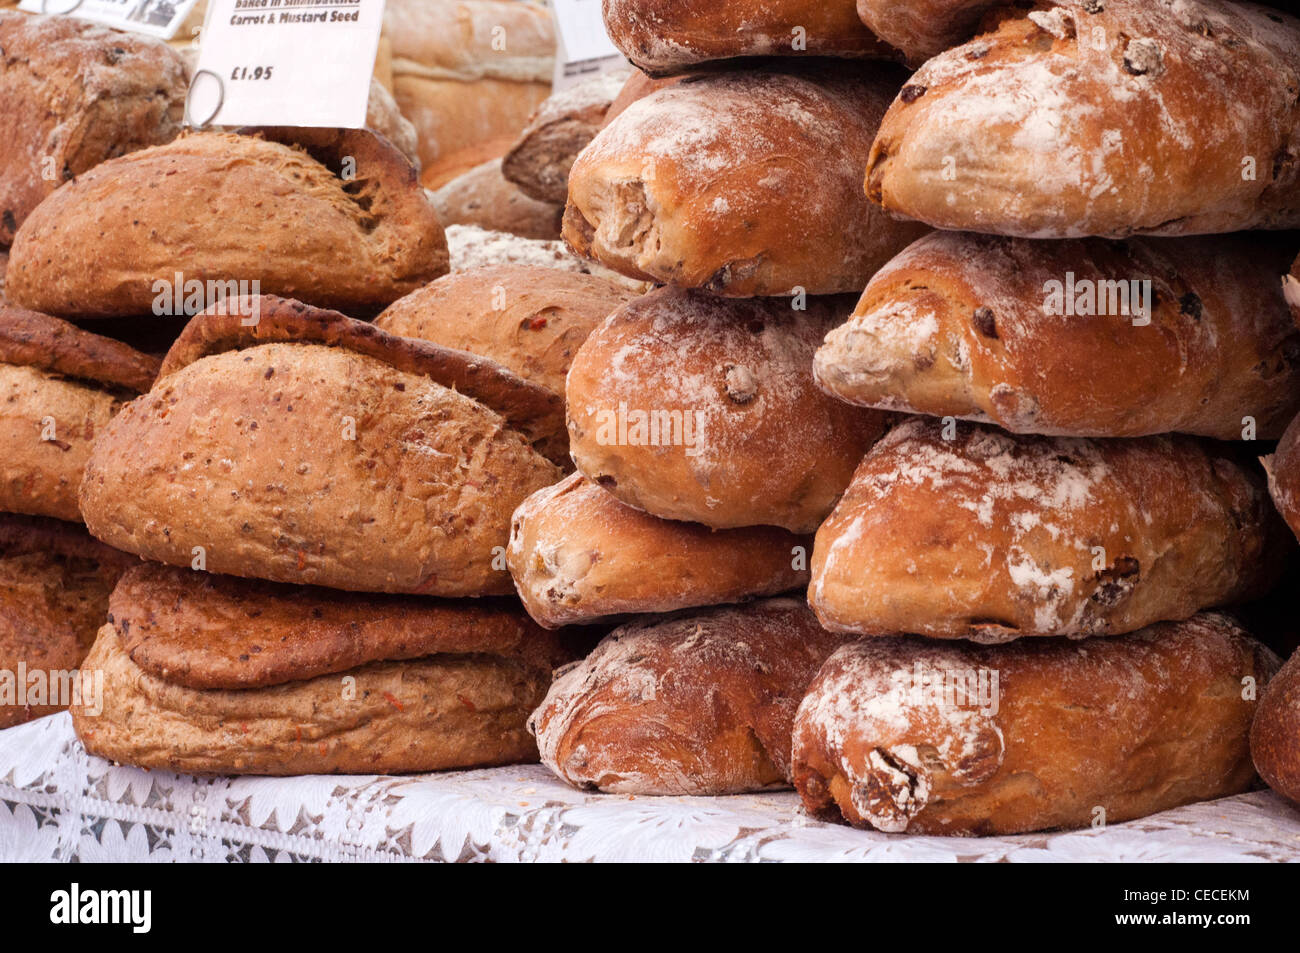 Loaves of fresh bread stacked at a Market - Stock Image